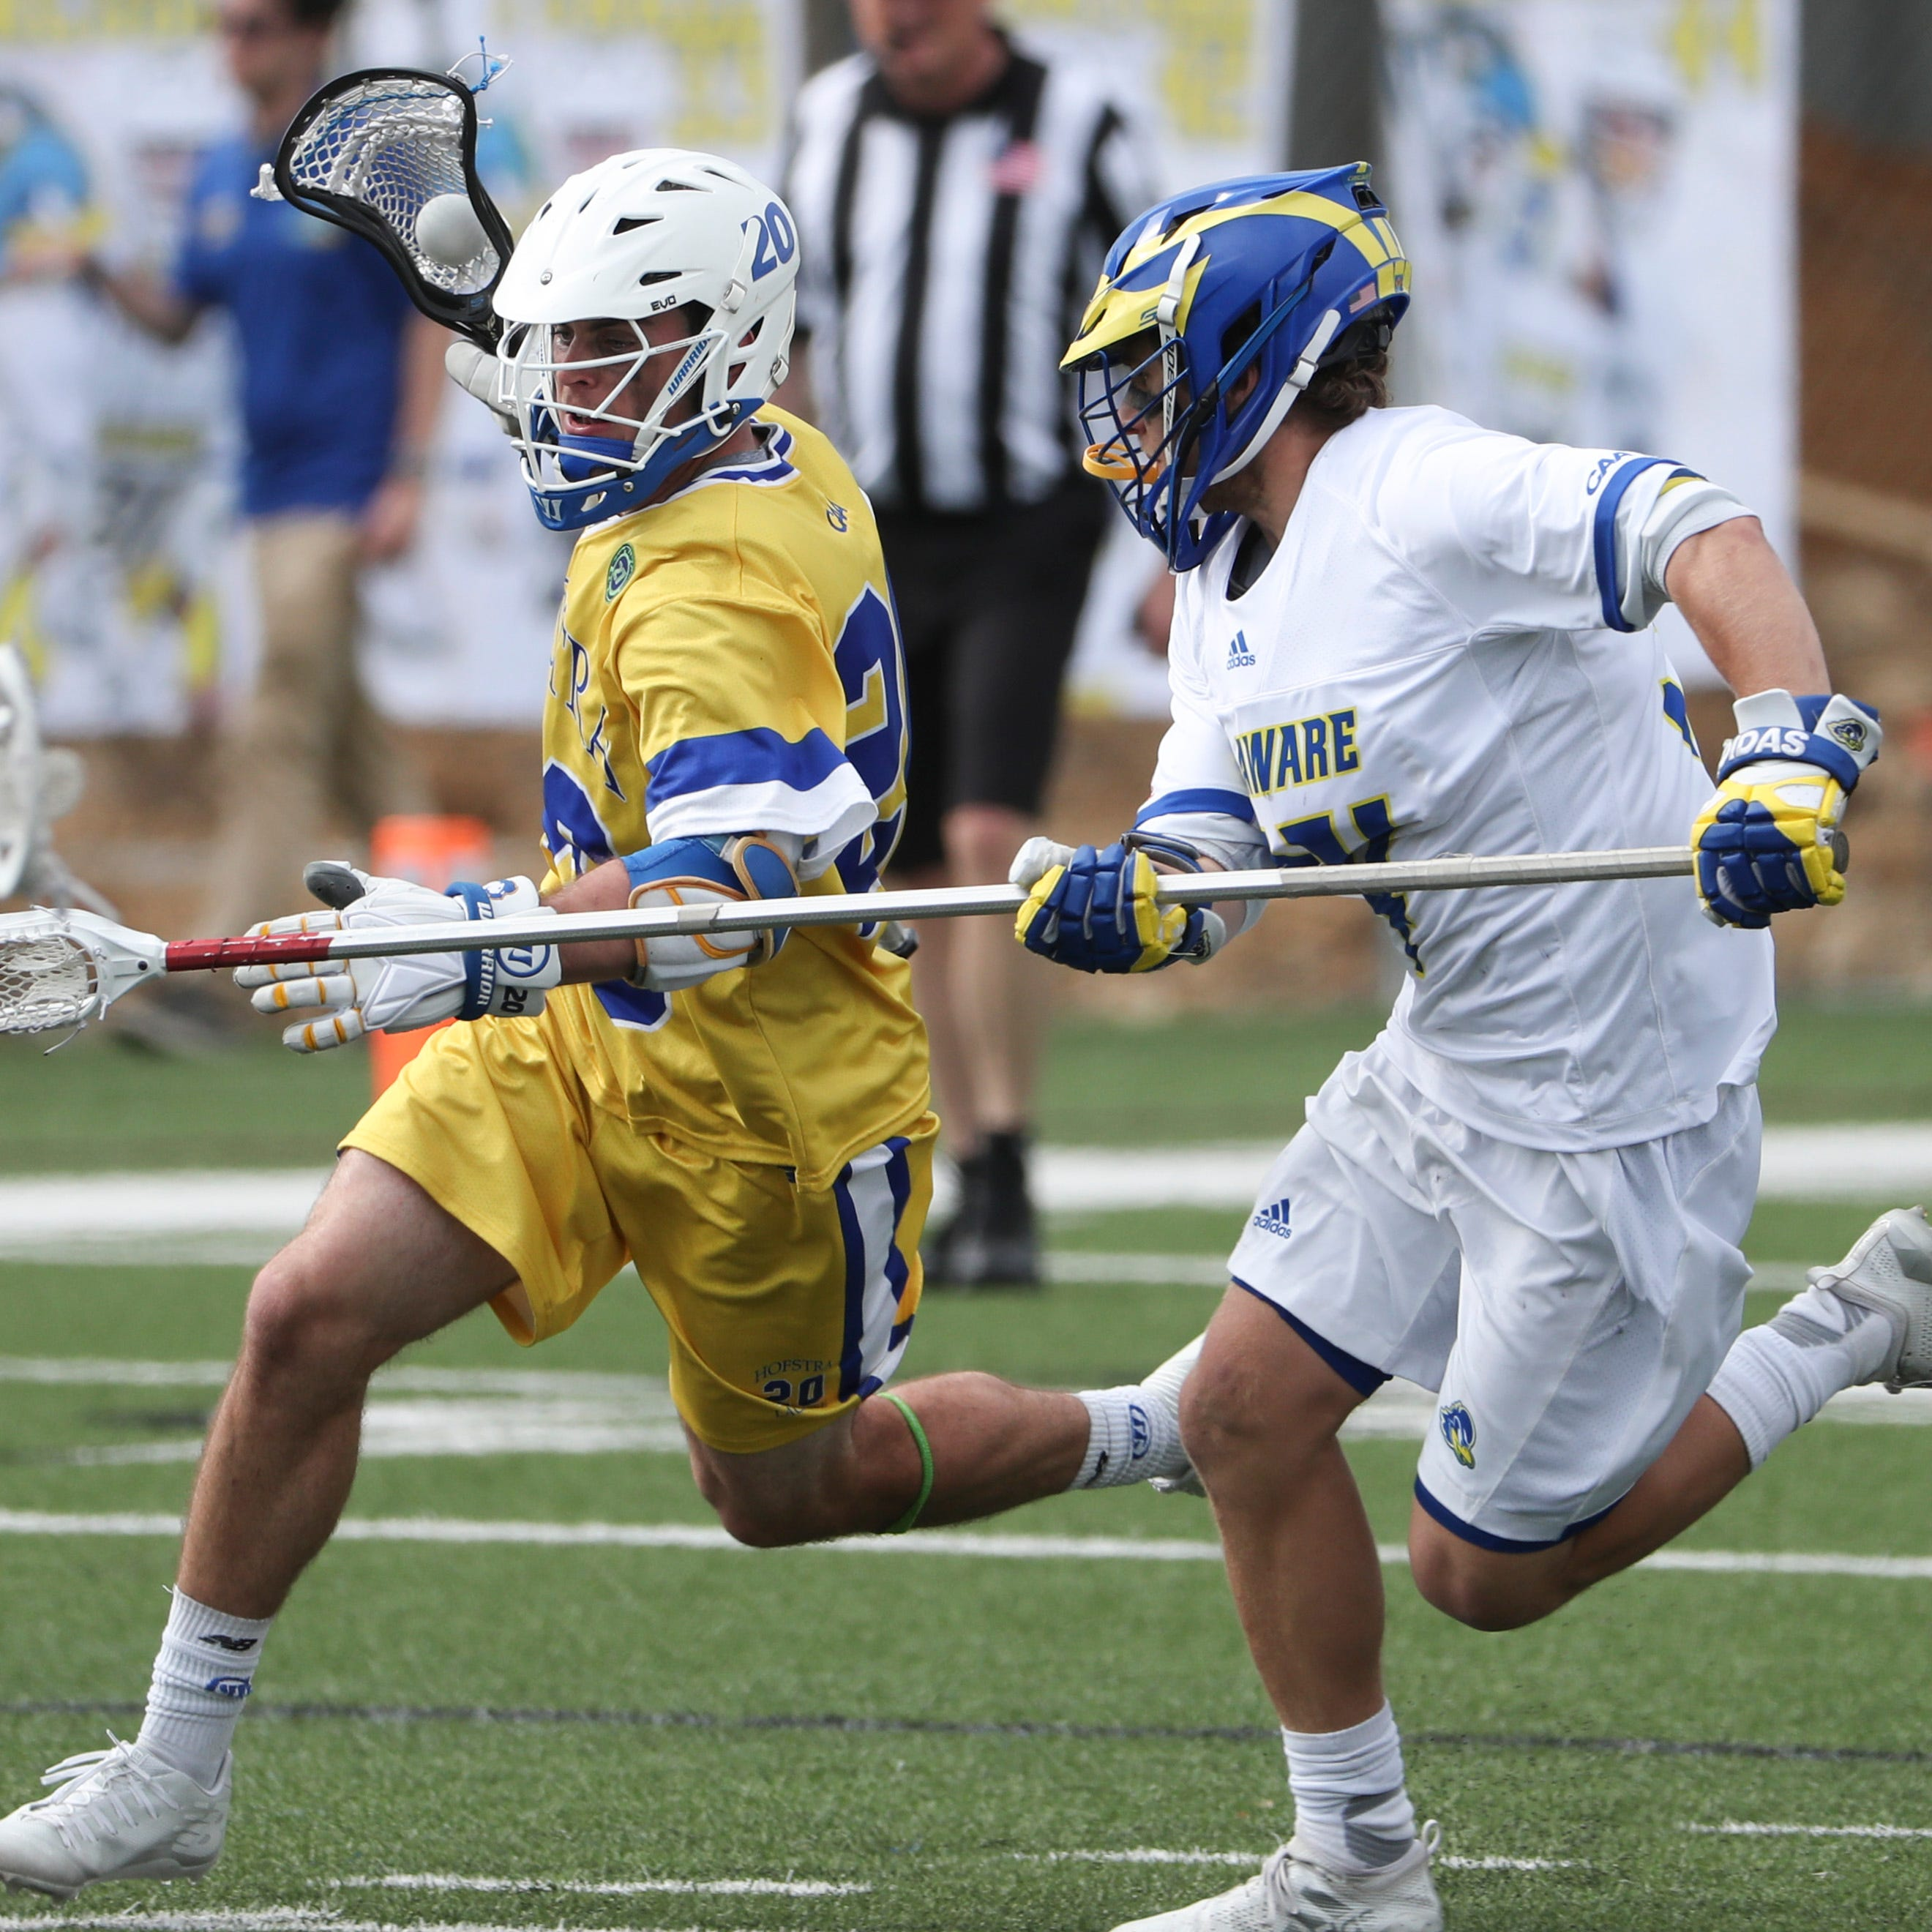 University of Delaware hammers Hofstra in CAA lacrosse showdown